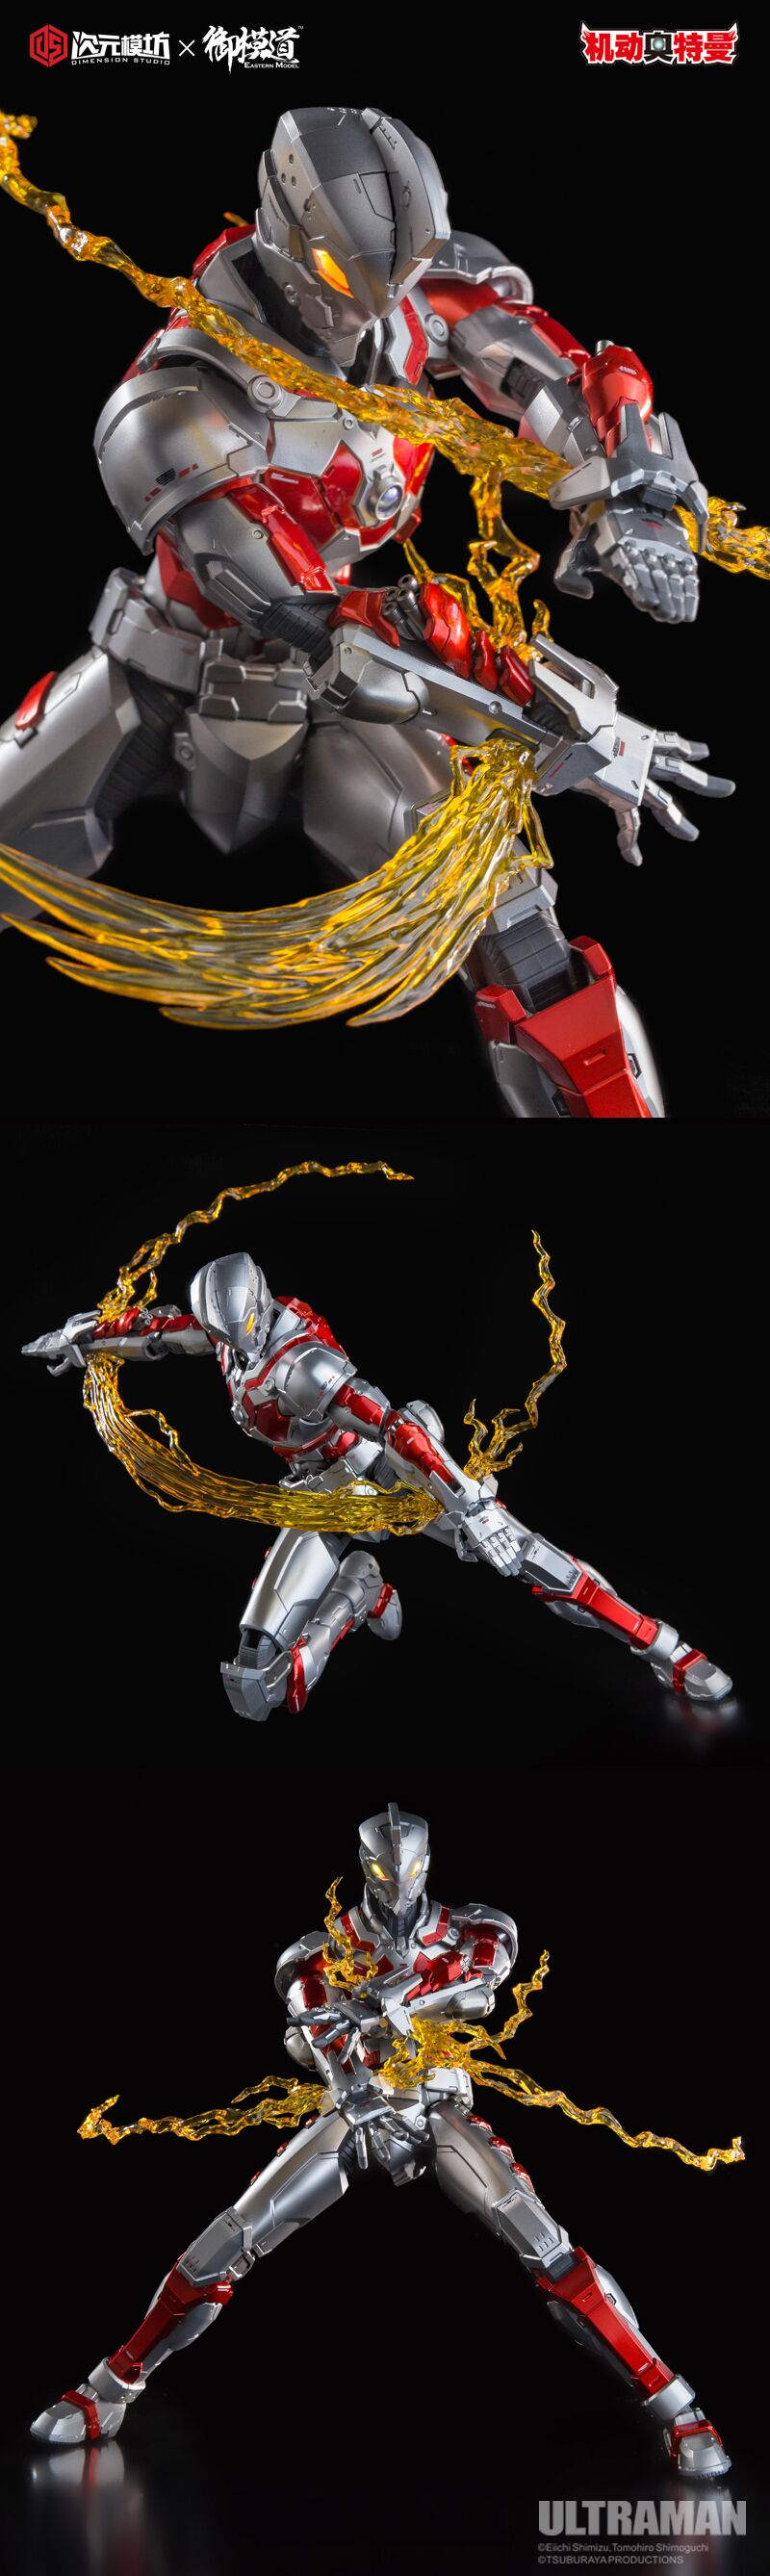 male - NEW PRODUCT: Dimension Mould X X Moto Road: 1/6 Mobile Ultraman Alloy Finished Series - Ess Altman 18214310